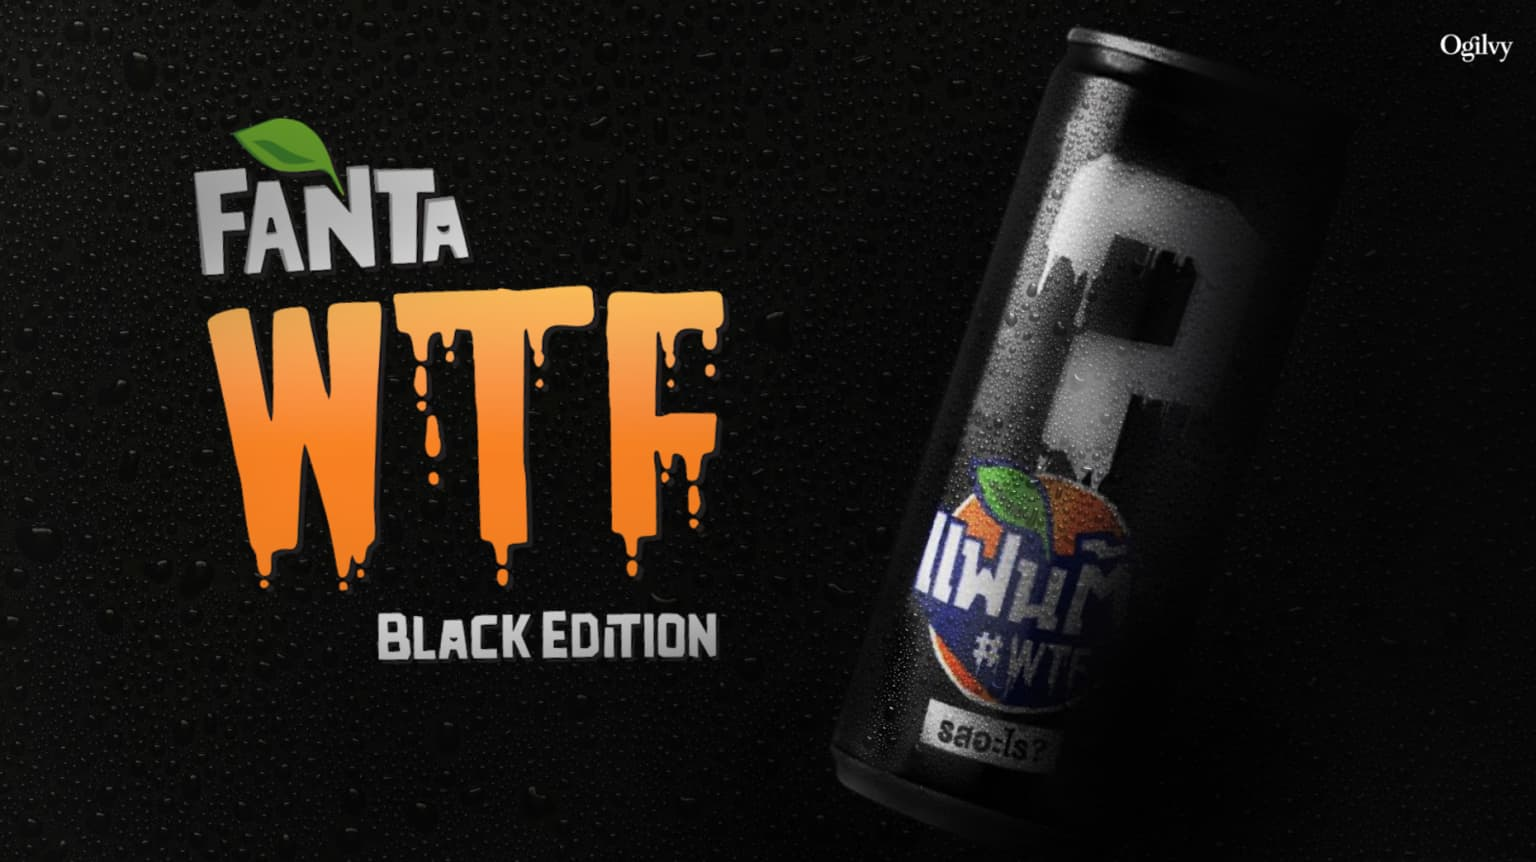 """Fanta """"What's behind the dark?"""" - Produced work"""